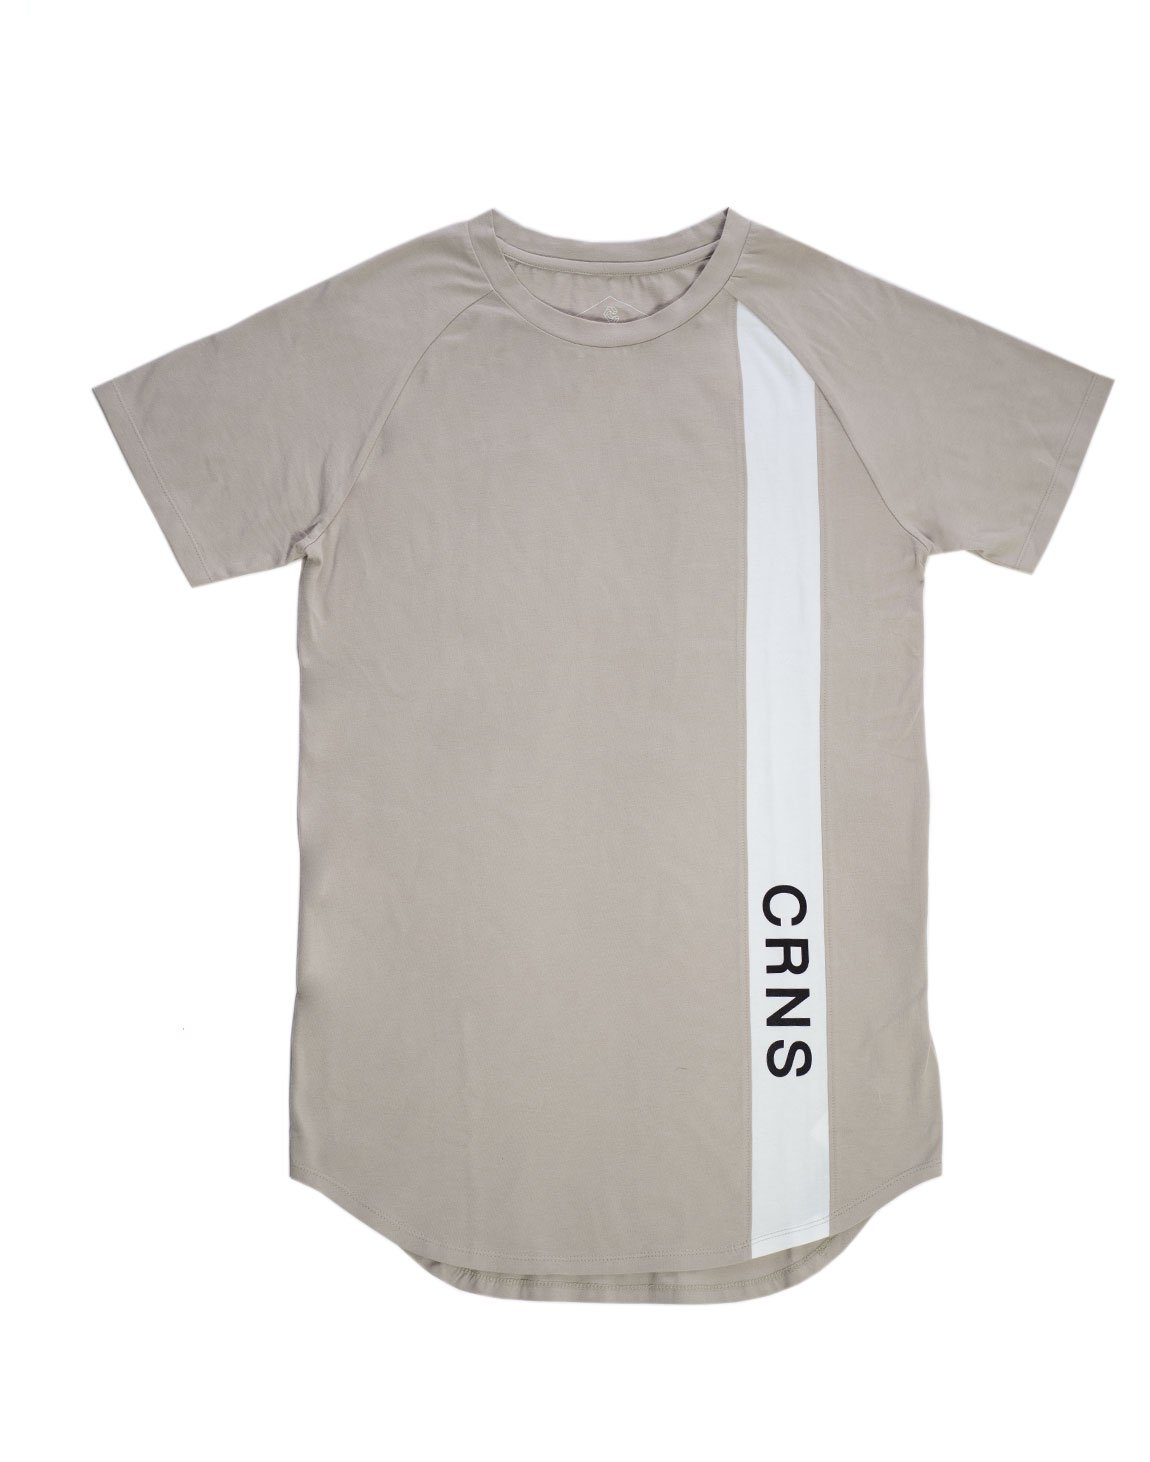 <img class='new_mark_img1' src='https://img.shop-pro.jp/img/new/icons1.gif' style='border:none;display:inline;margin:0px;padding:0px;width:auto;' />CRNS Line Fit T-Shirt  BEIGE